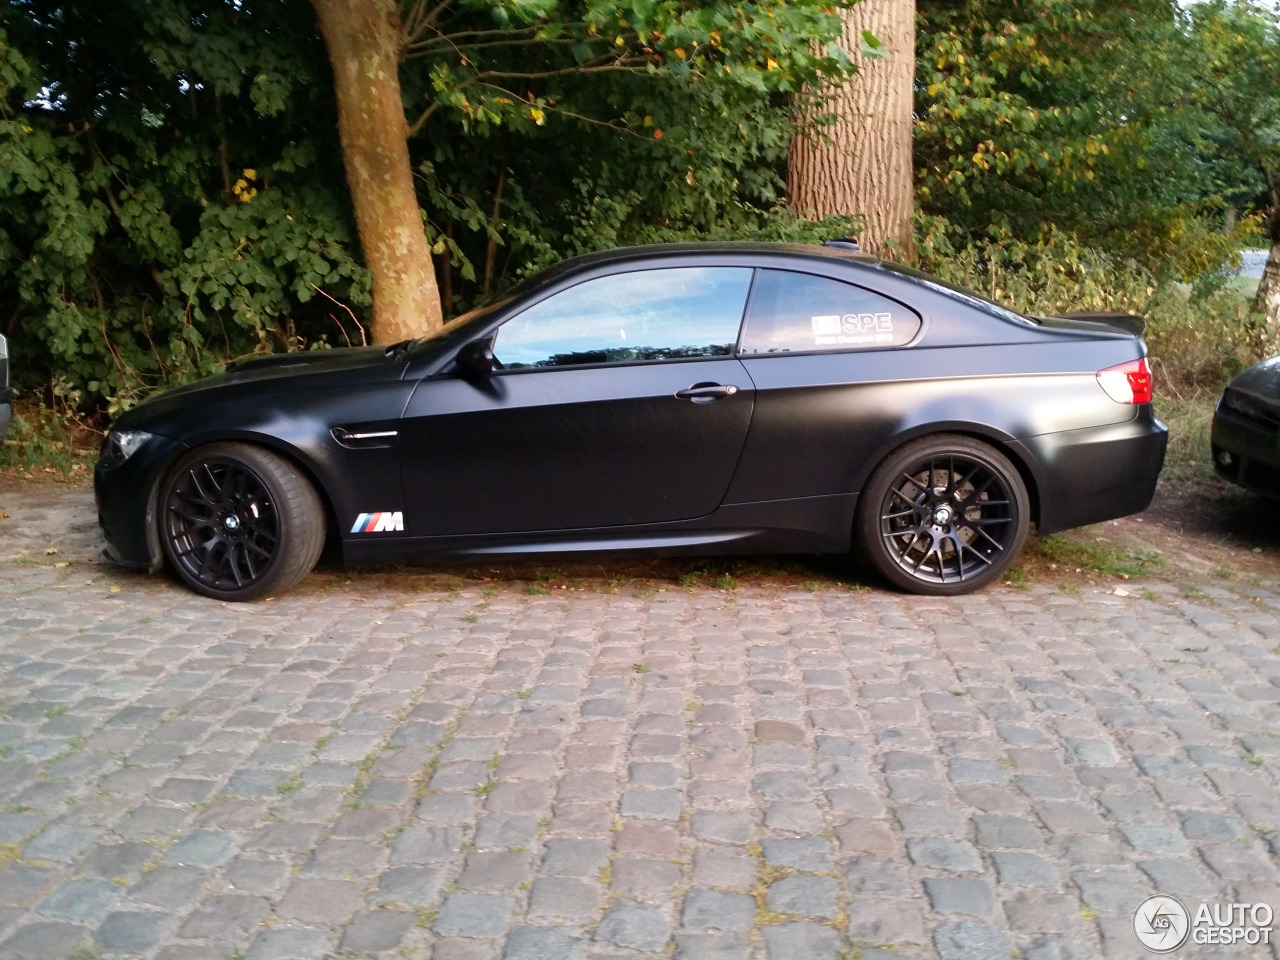 BMW M3 E92 Coupé DTM Champion Edition - 11 August 2015 - Autogespot